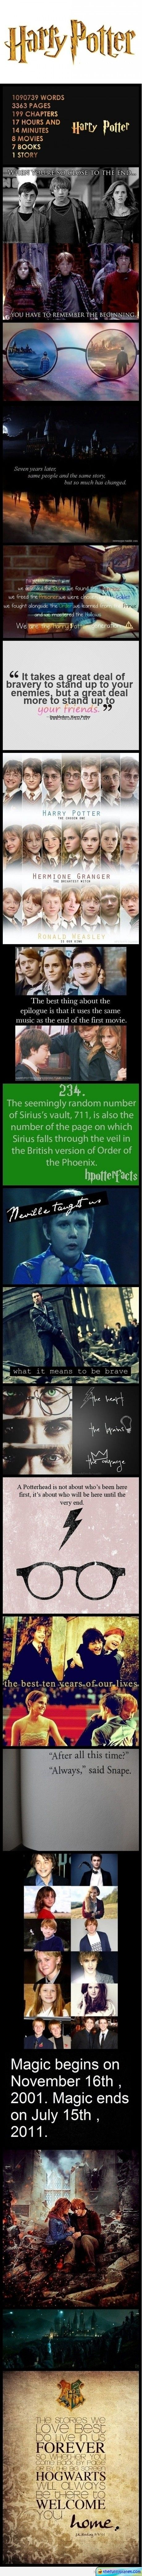 Harry Potter is a way of life